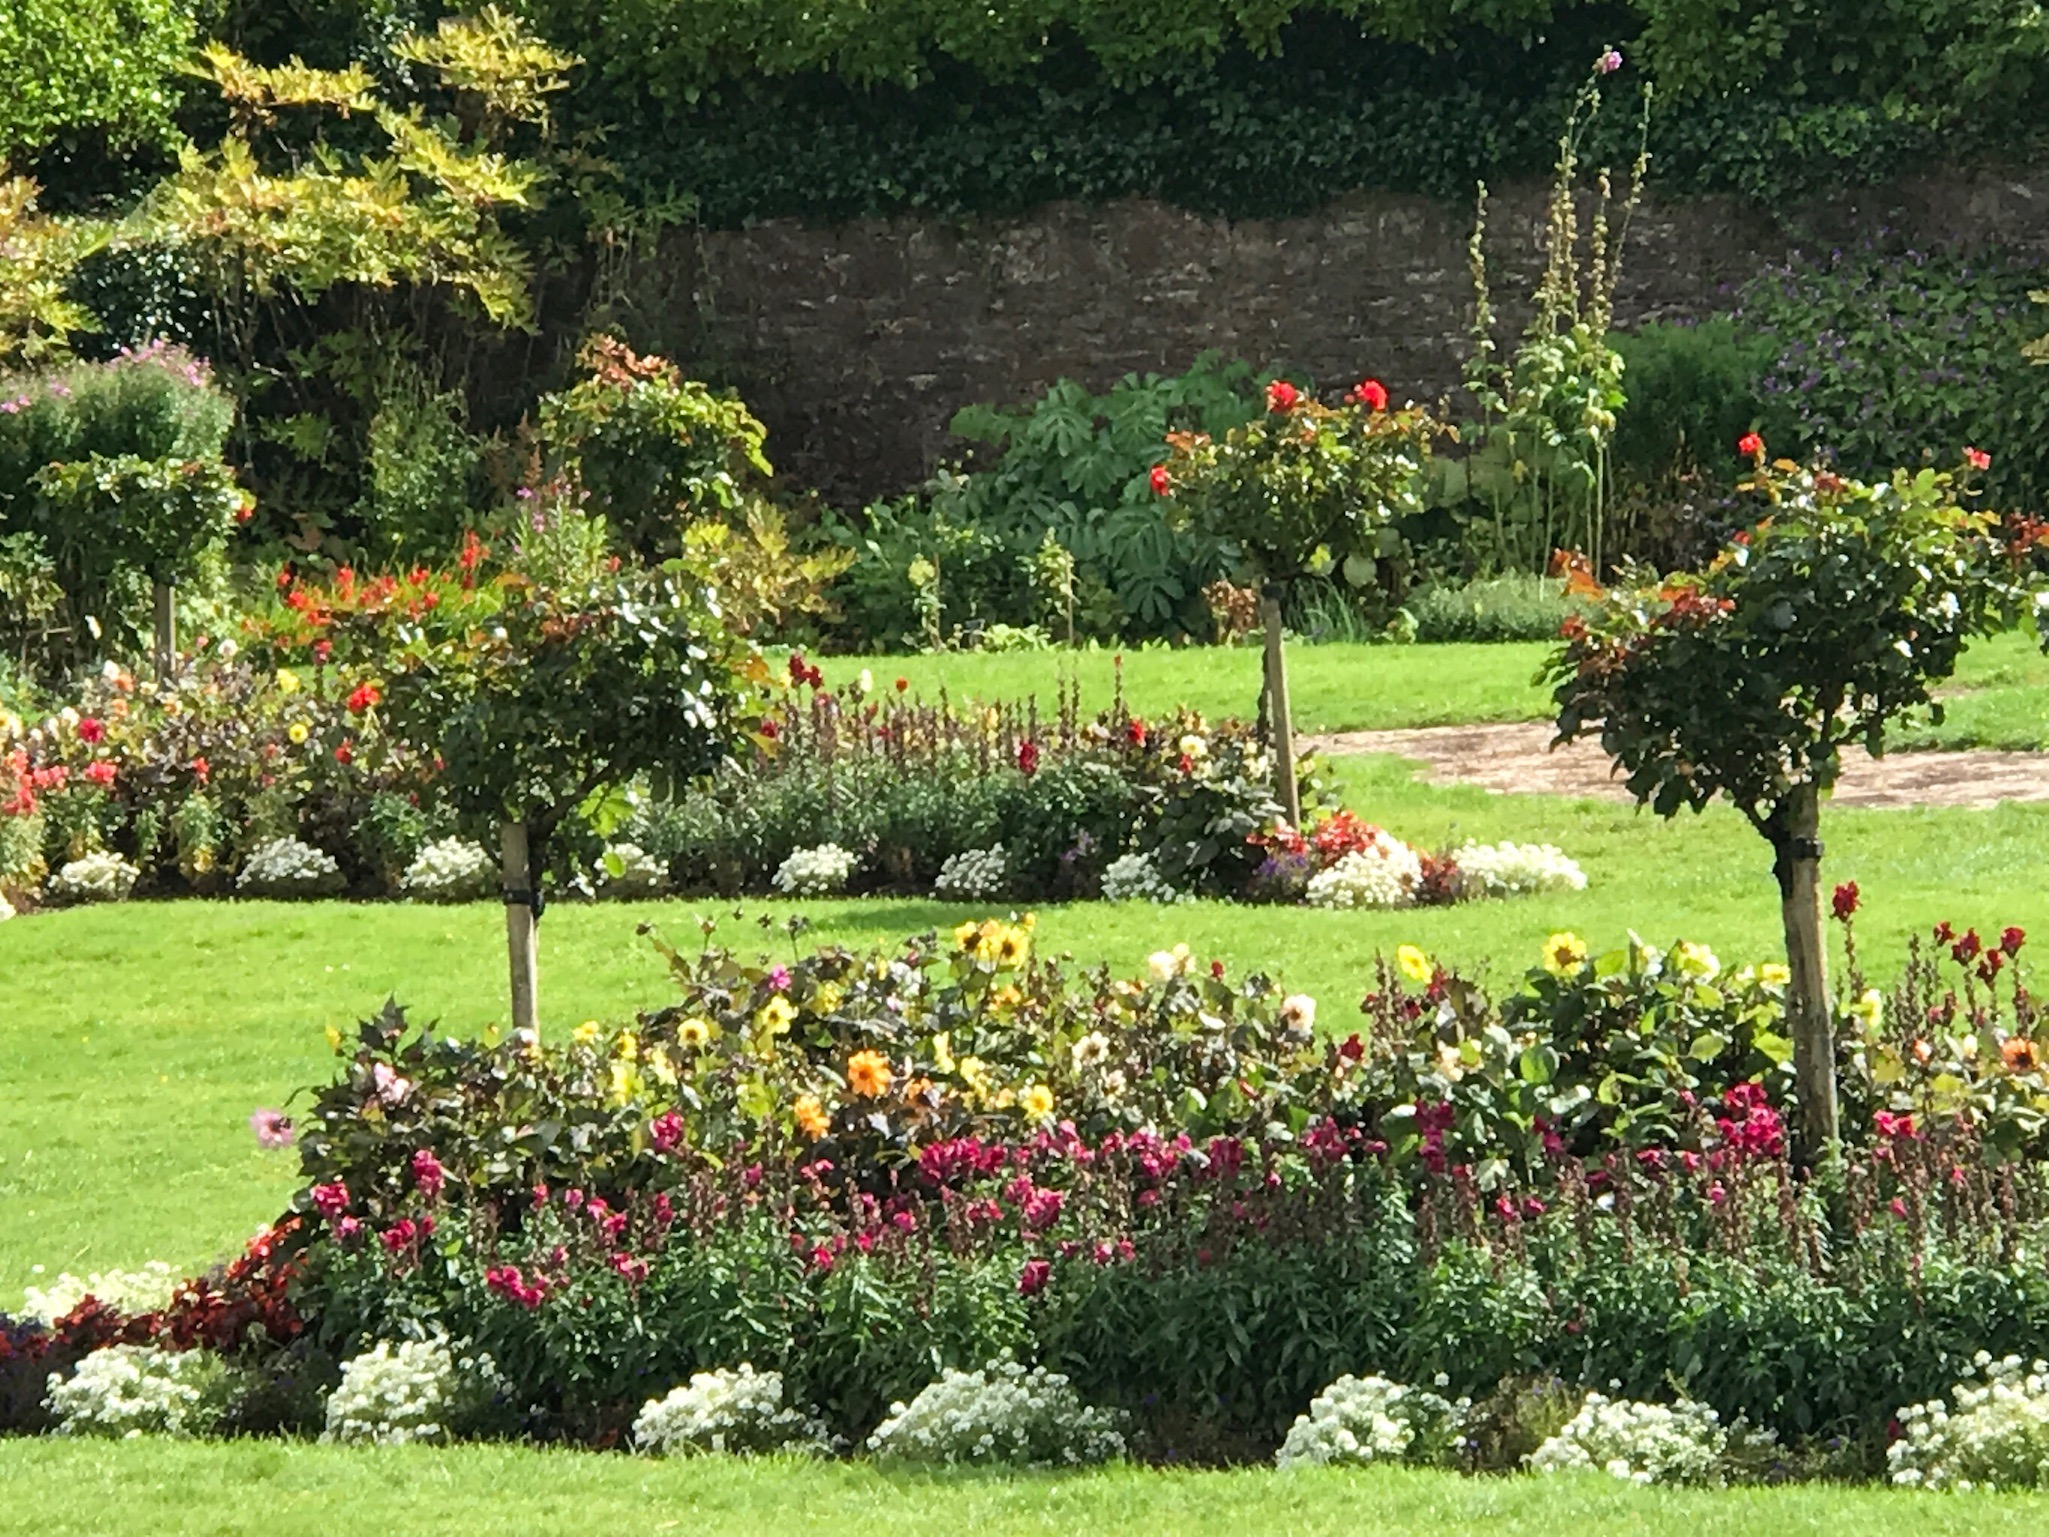 The gardens at the Muckross House